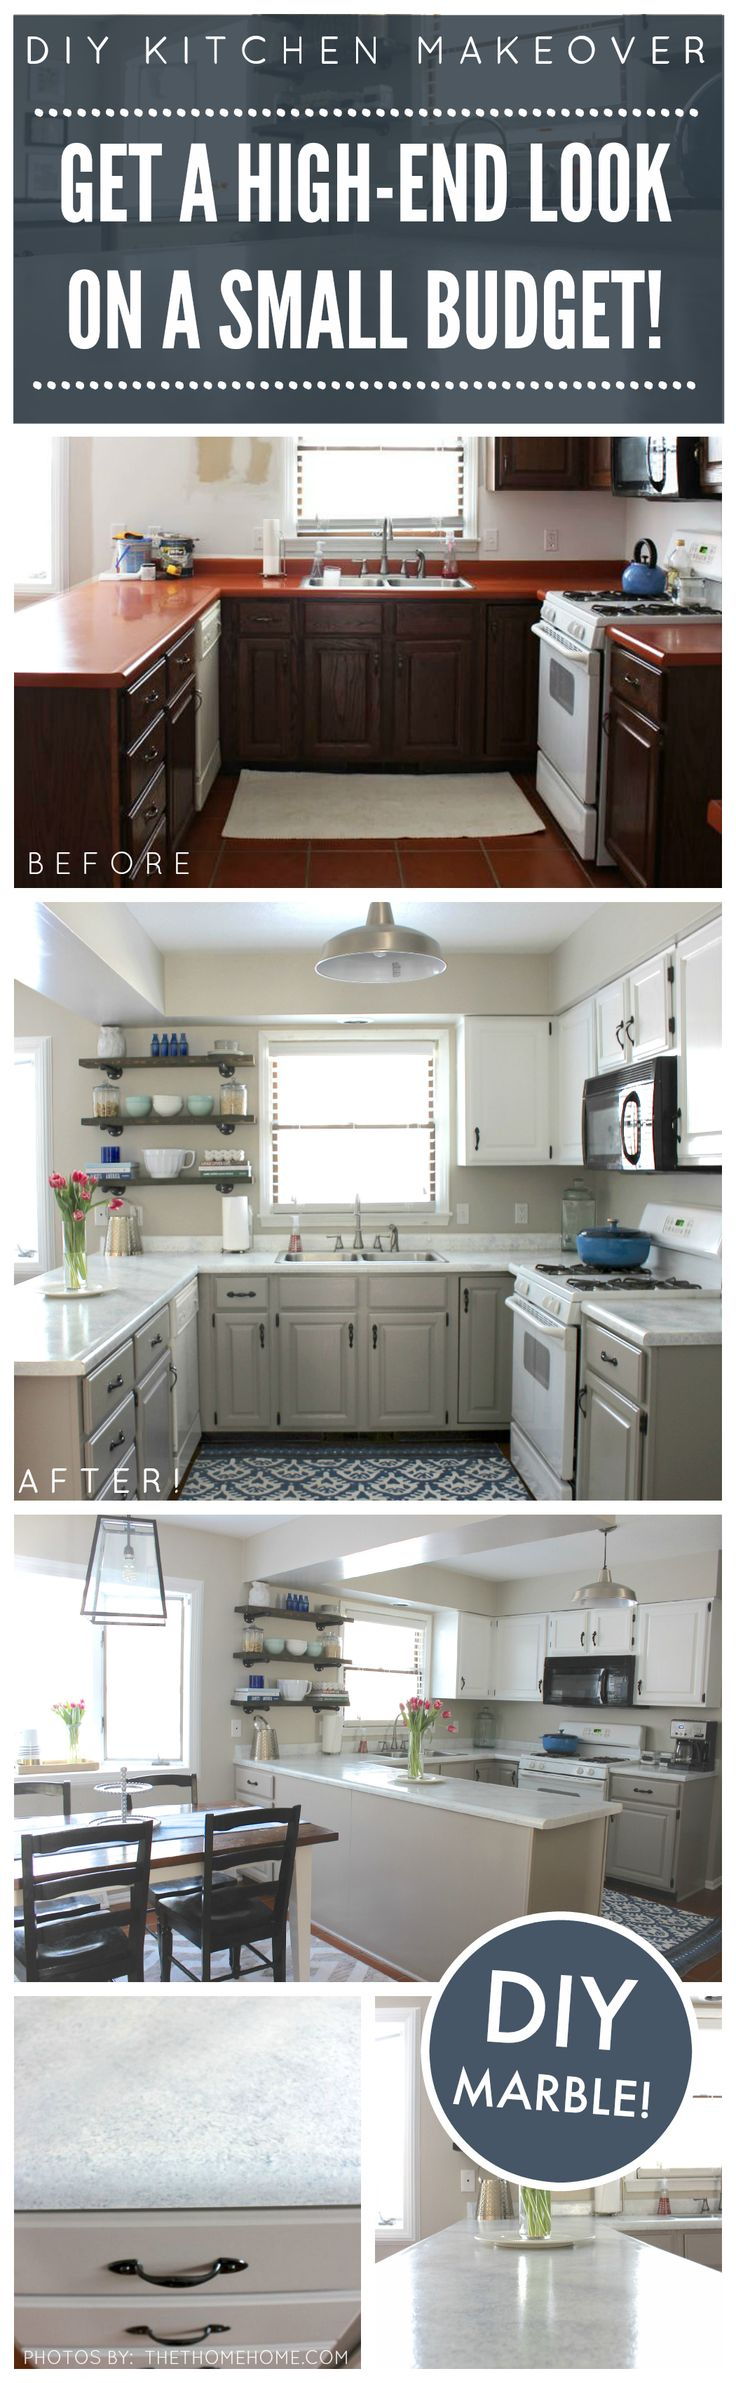 best 25+ countertop paint kit ideas on pinterest | diy kitchen